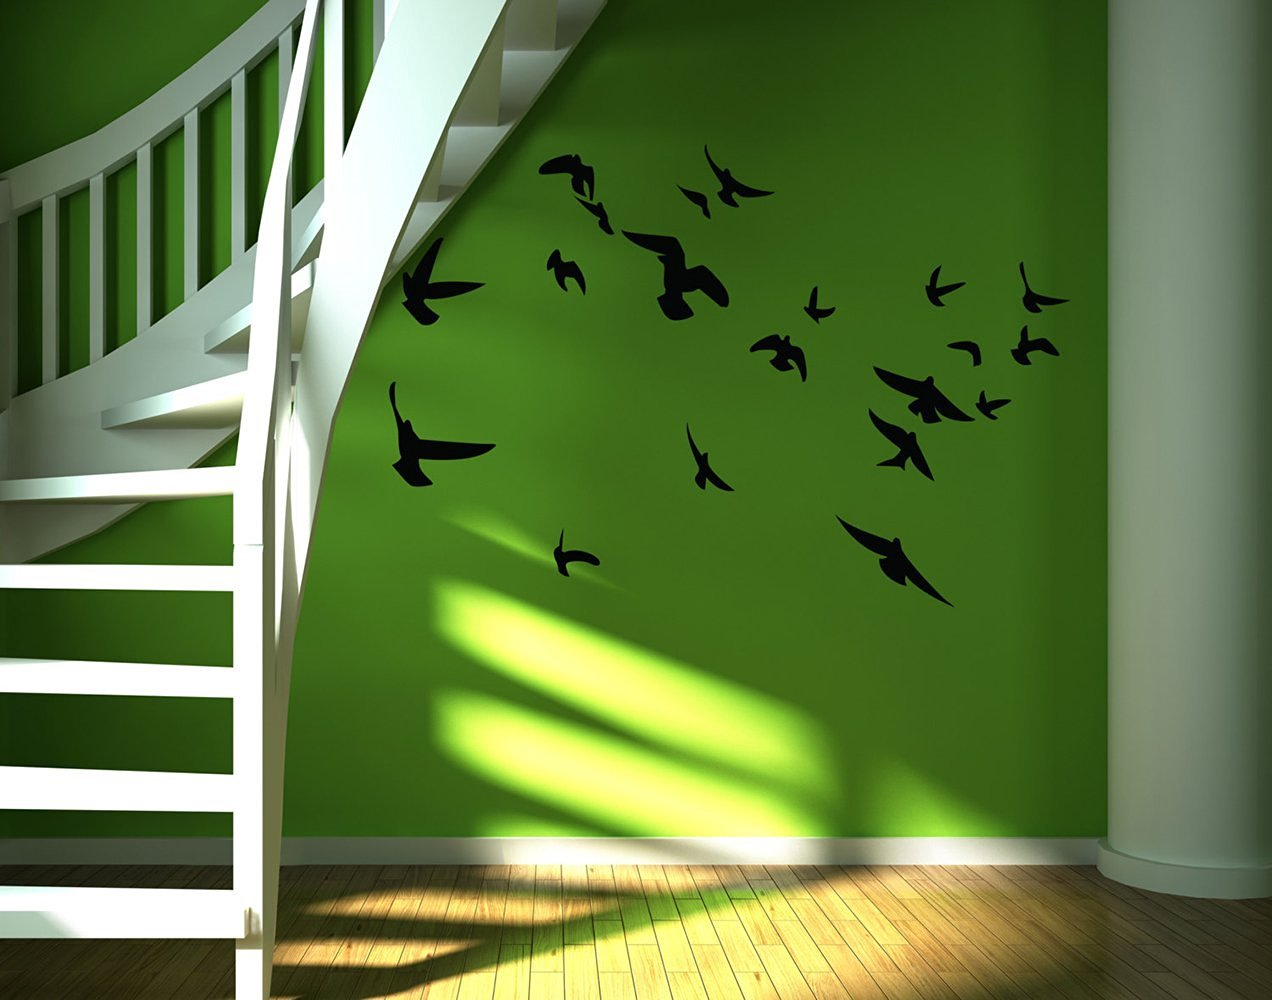 """Dnven Animals (60""""w x 41""""h) Flying Birds Peace Doves Pigeon Silhouette Wall Decals Stickers Removable Vinyl Arts for Bedrooms Family Playroom Classroom Nursery"""